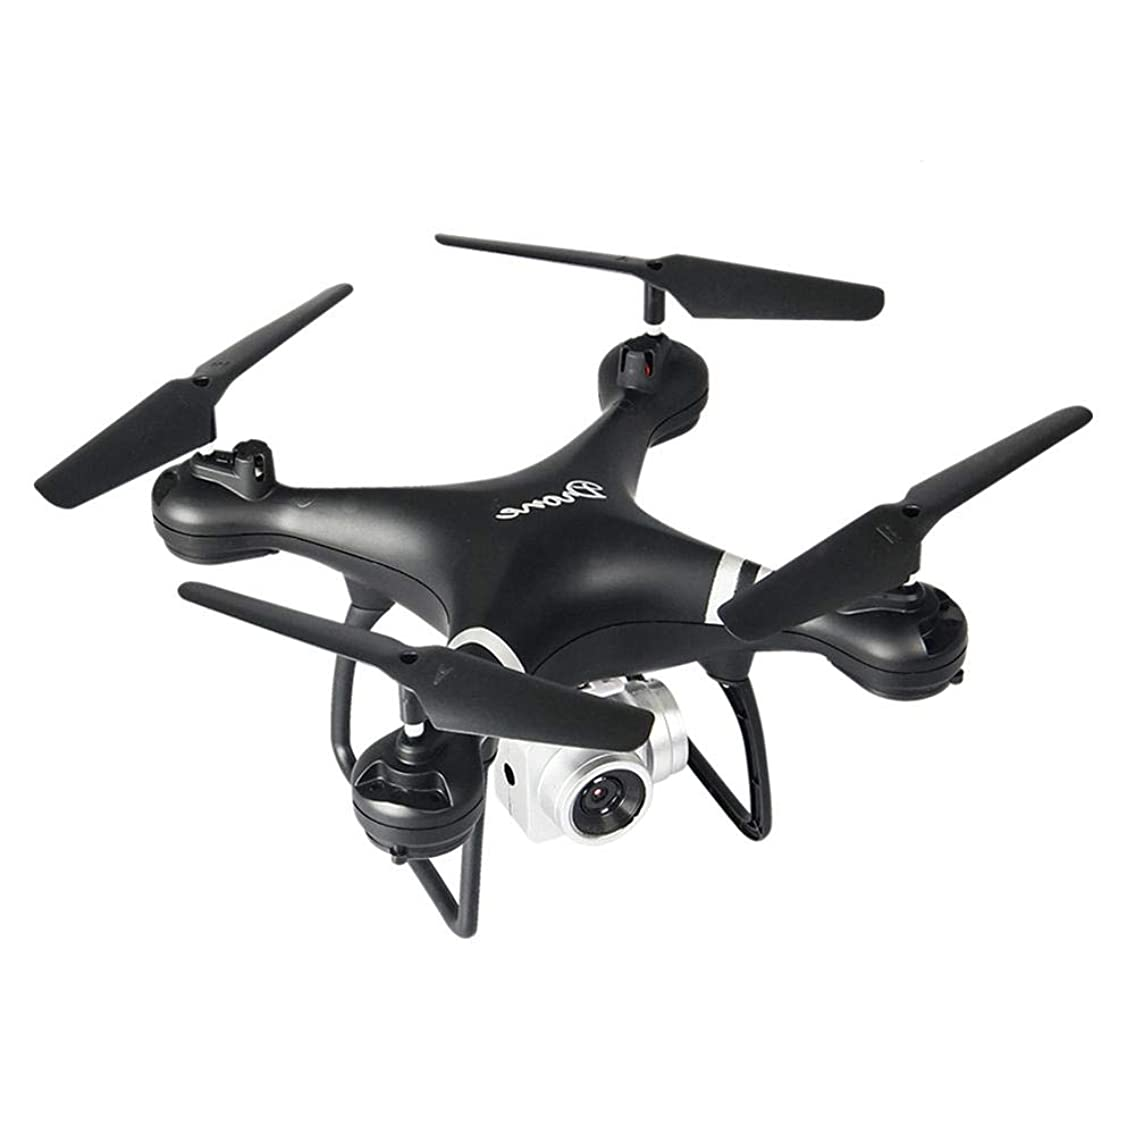 Lijuan Qin LF608 WiFi FPV RC Drone Quadcopter with 2.0MP/5.0MP Camera, Remote Control Drone Aircraft Air Pressure Fixed Height, Axis Aircraft Drone Toy for Adults